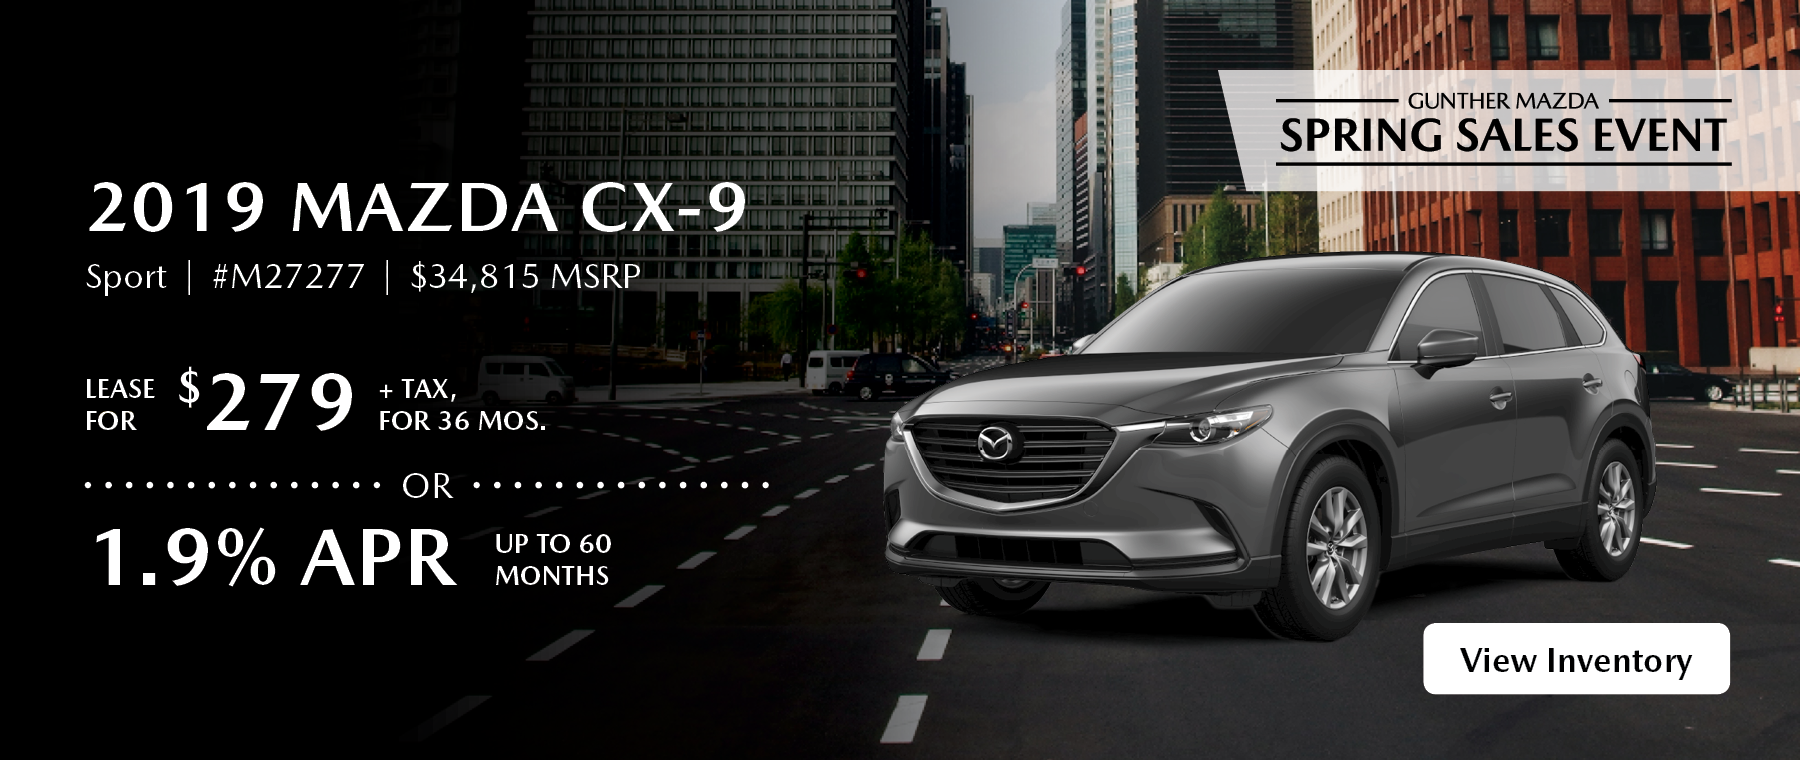 Lease the 2019 Mazda CX-9 Sport for $279 plus tax for 36 months.